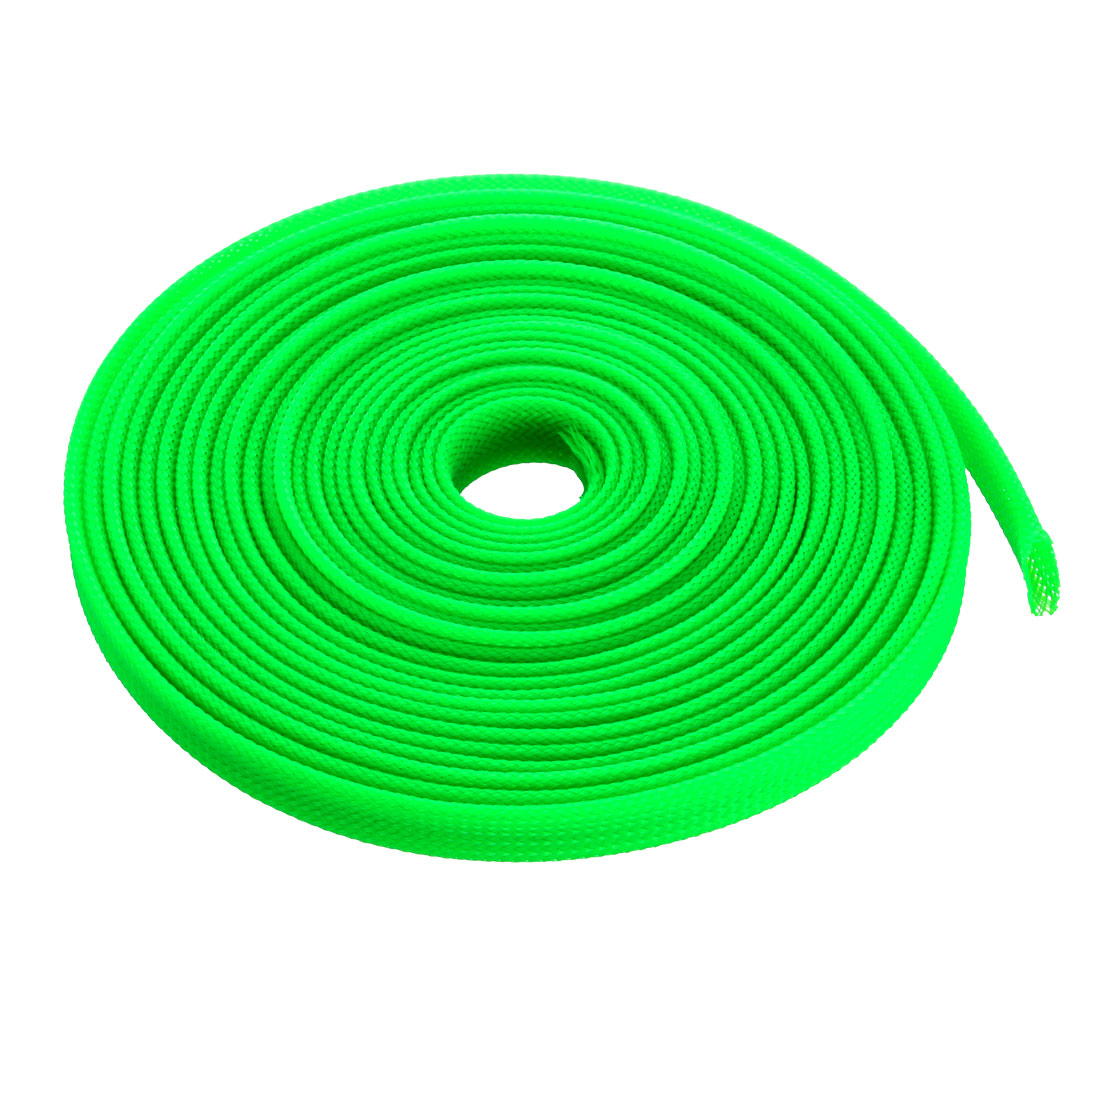 8mm Dia Tight PET Sleeving Cable Wrap Sheath Fluorescent Green 16Ft